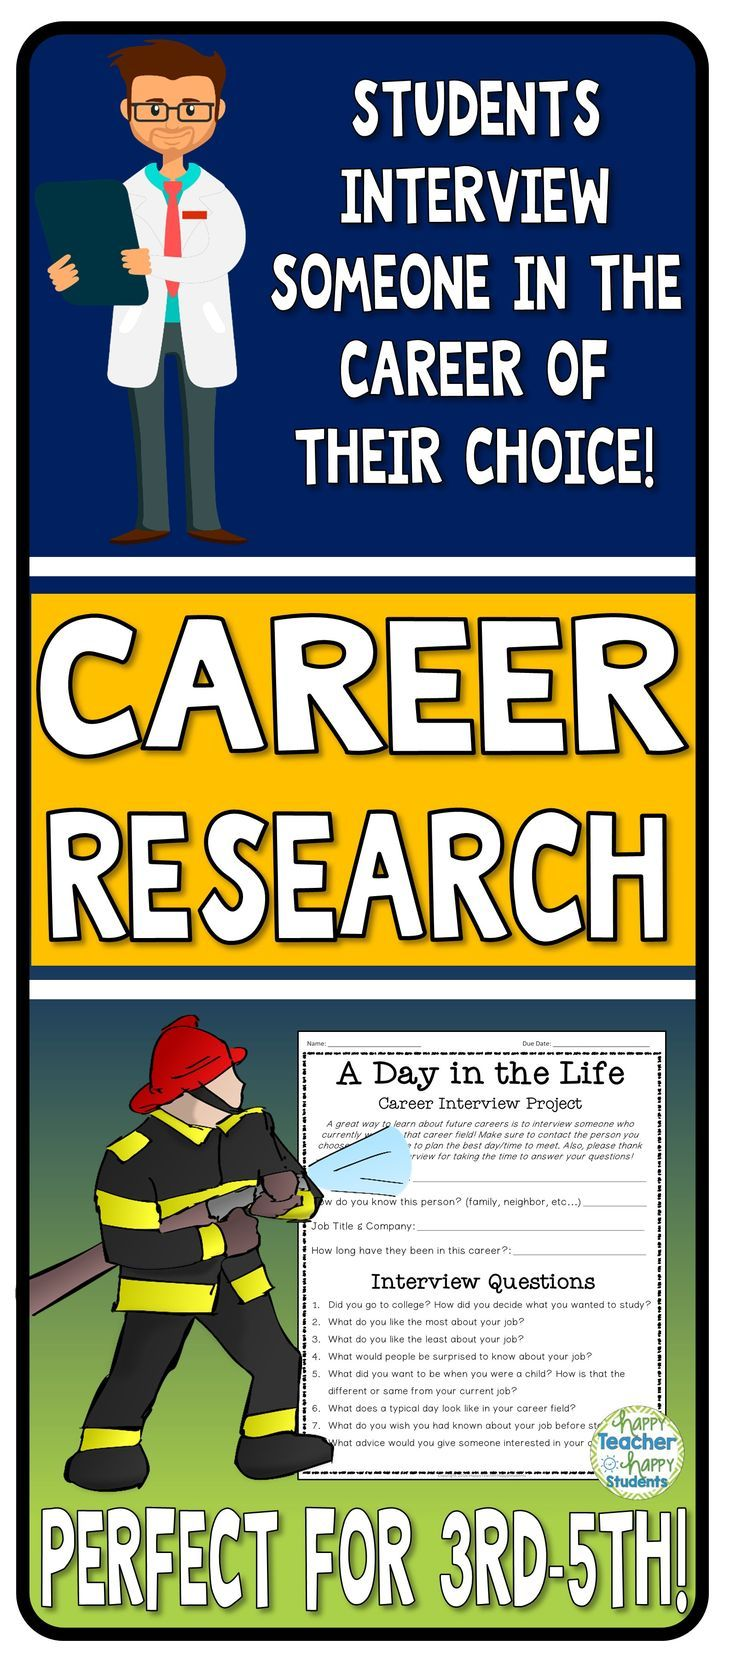 Students love to dream about the careers they will have when they grow up! This Career Exploration Research Project allows students to talk with someone in their chosen career field and find out more about what that job is really like!